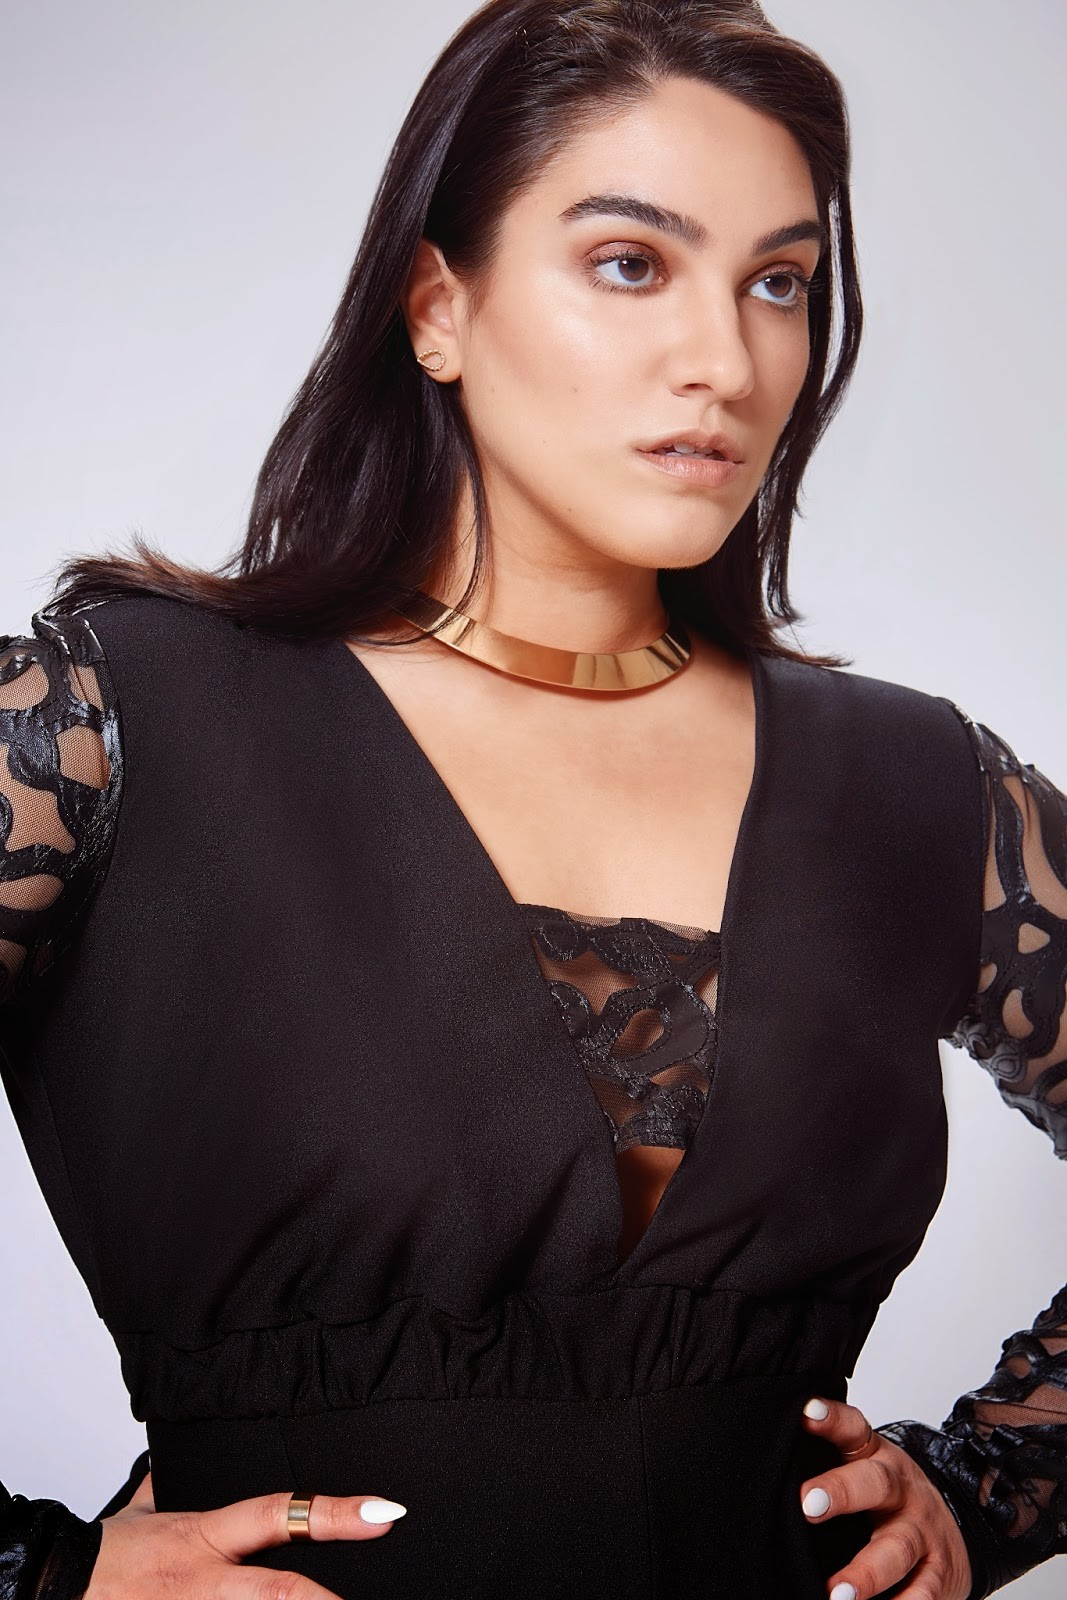 Nadia Aboulhosn Top 25 Plus-Size Fashion Bloggers